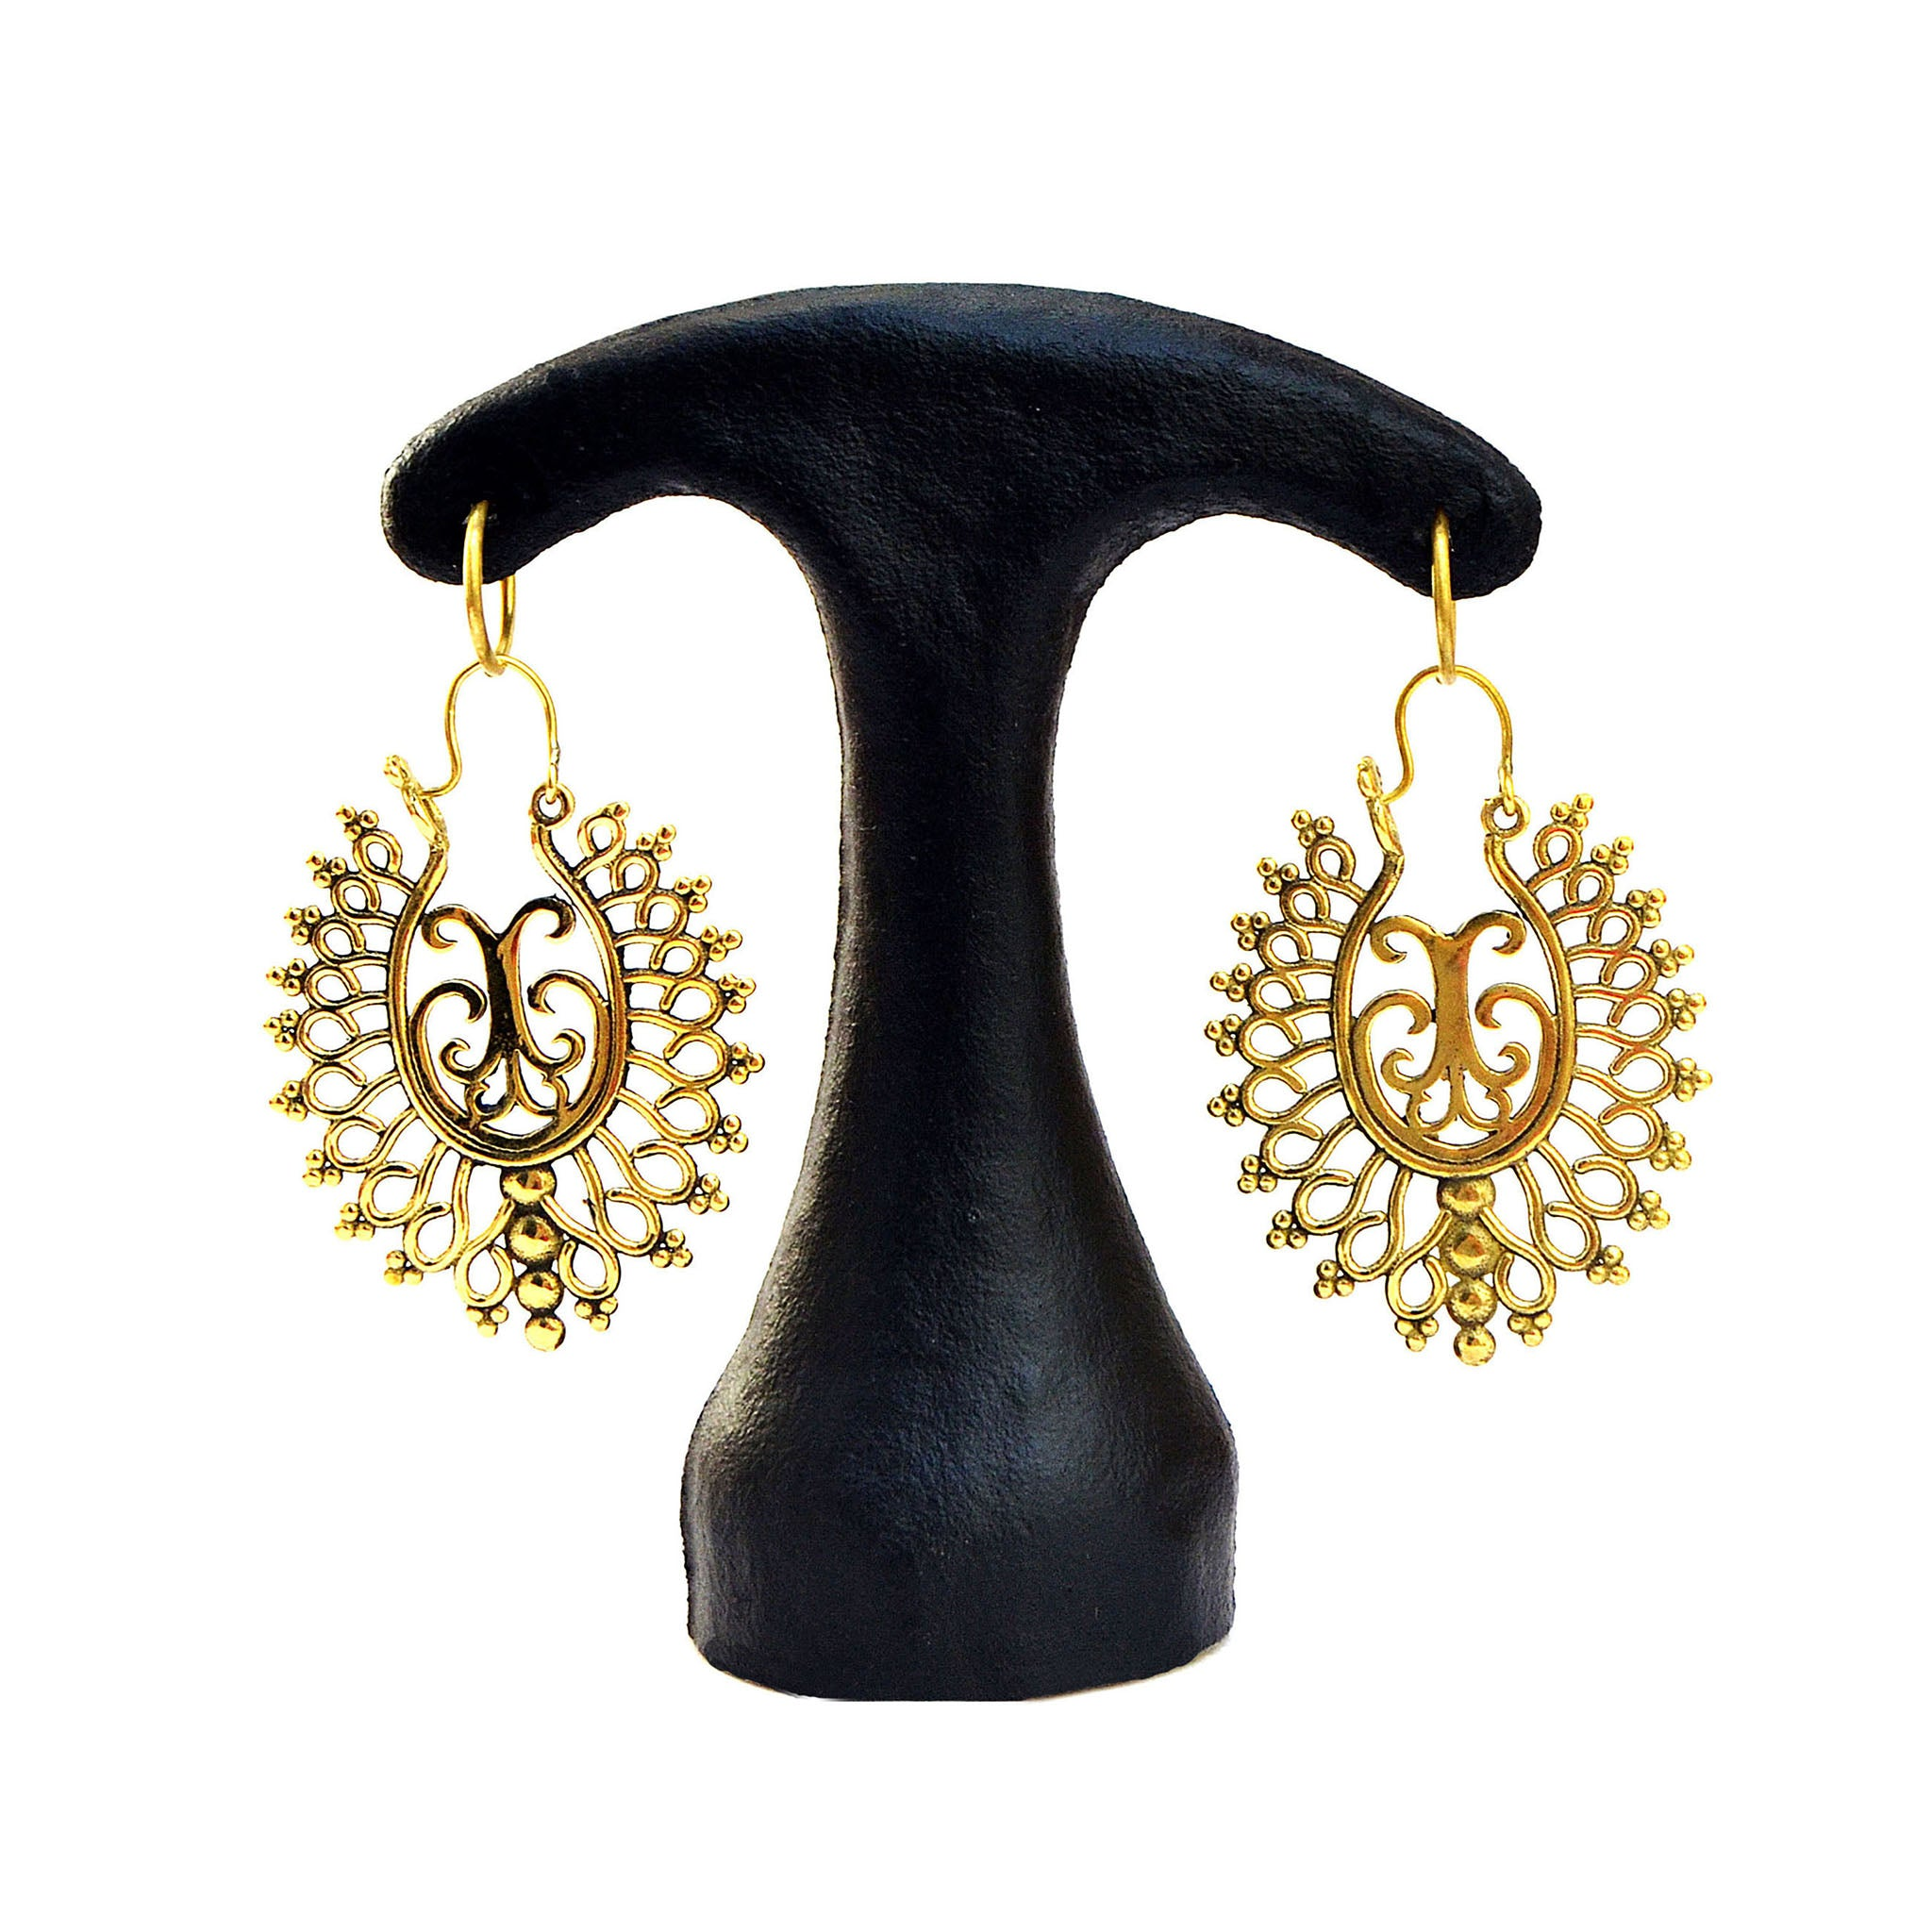 Ethnic dangly earrings